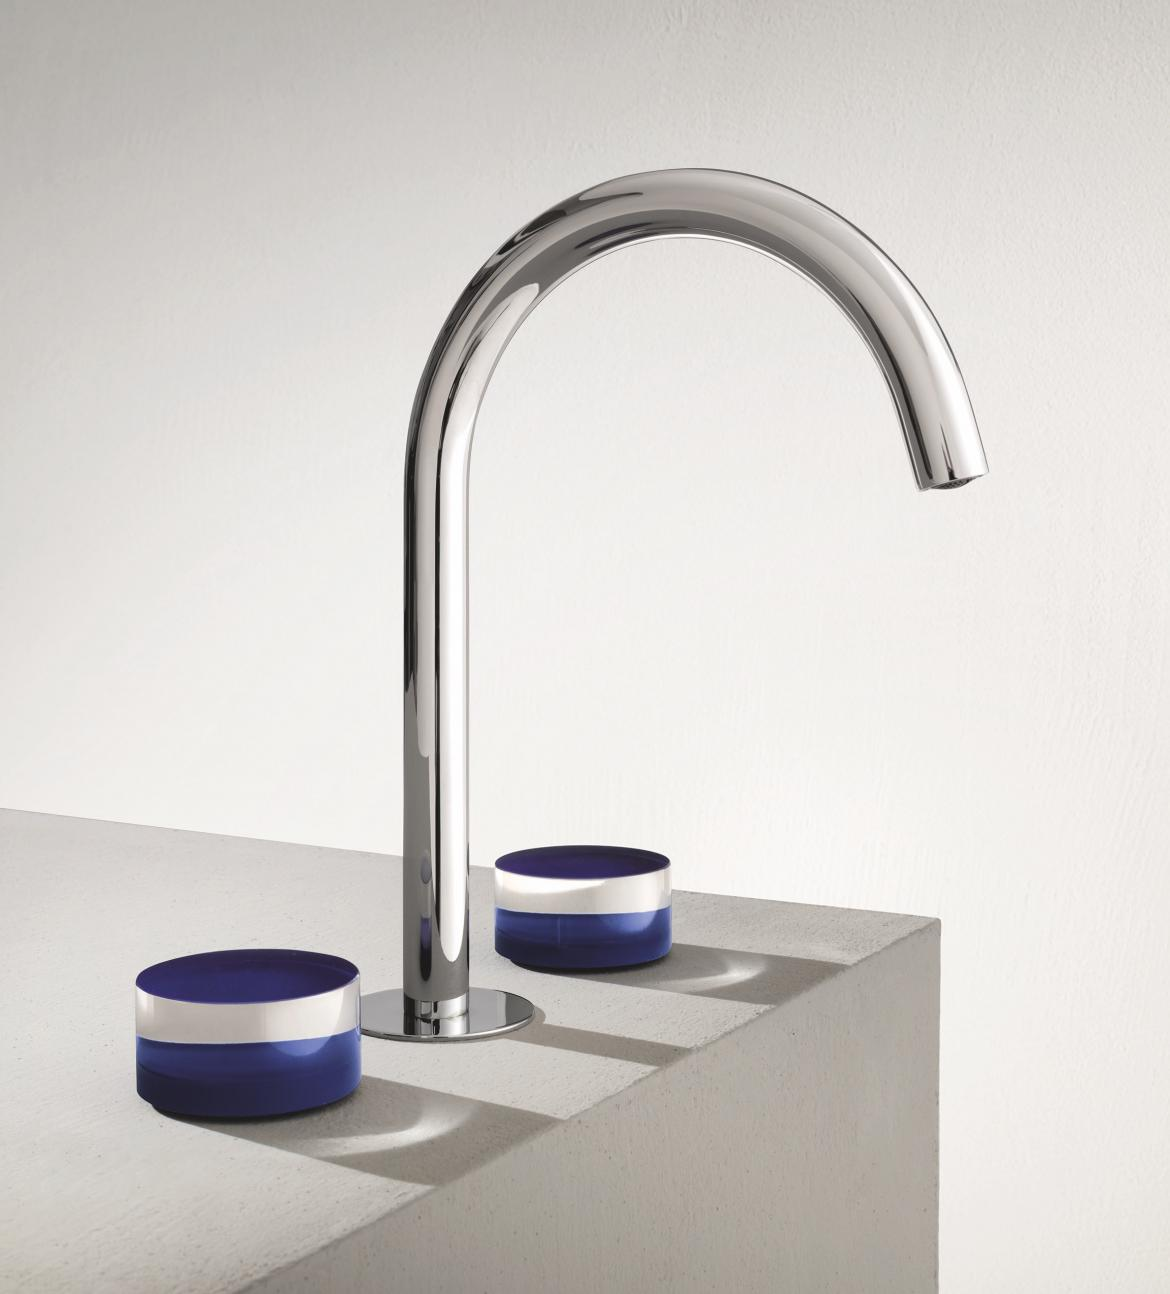 Fantini Nice Collection three hole deck mount faucet